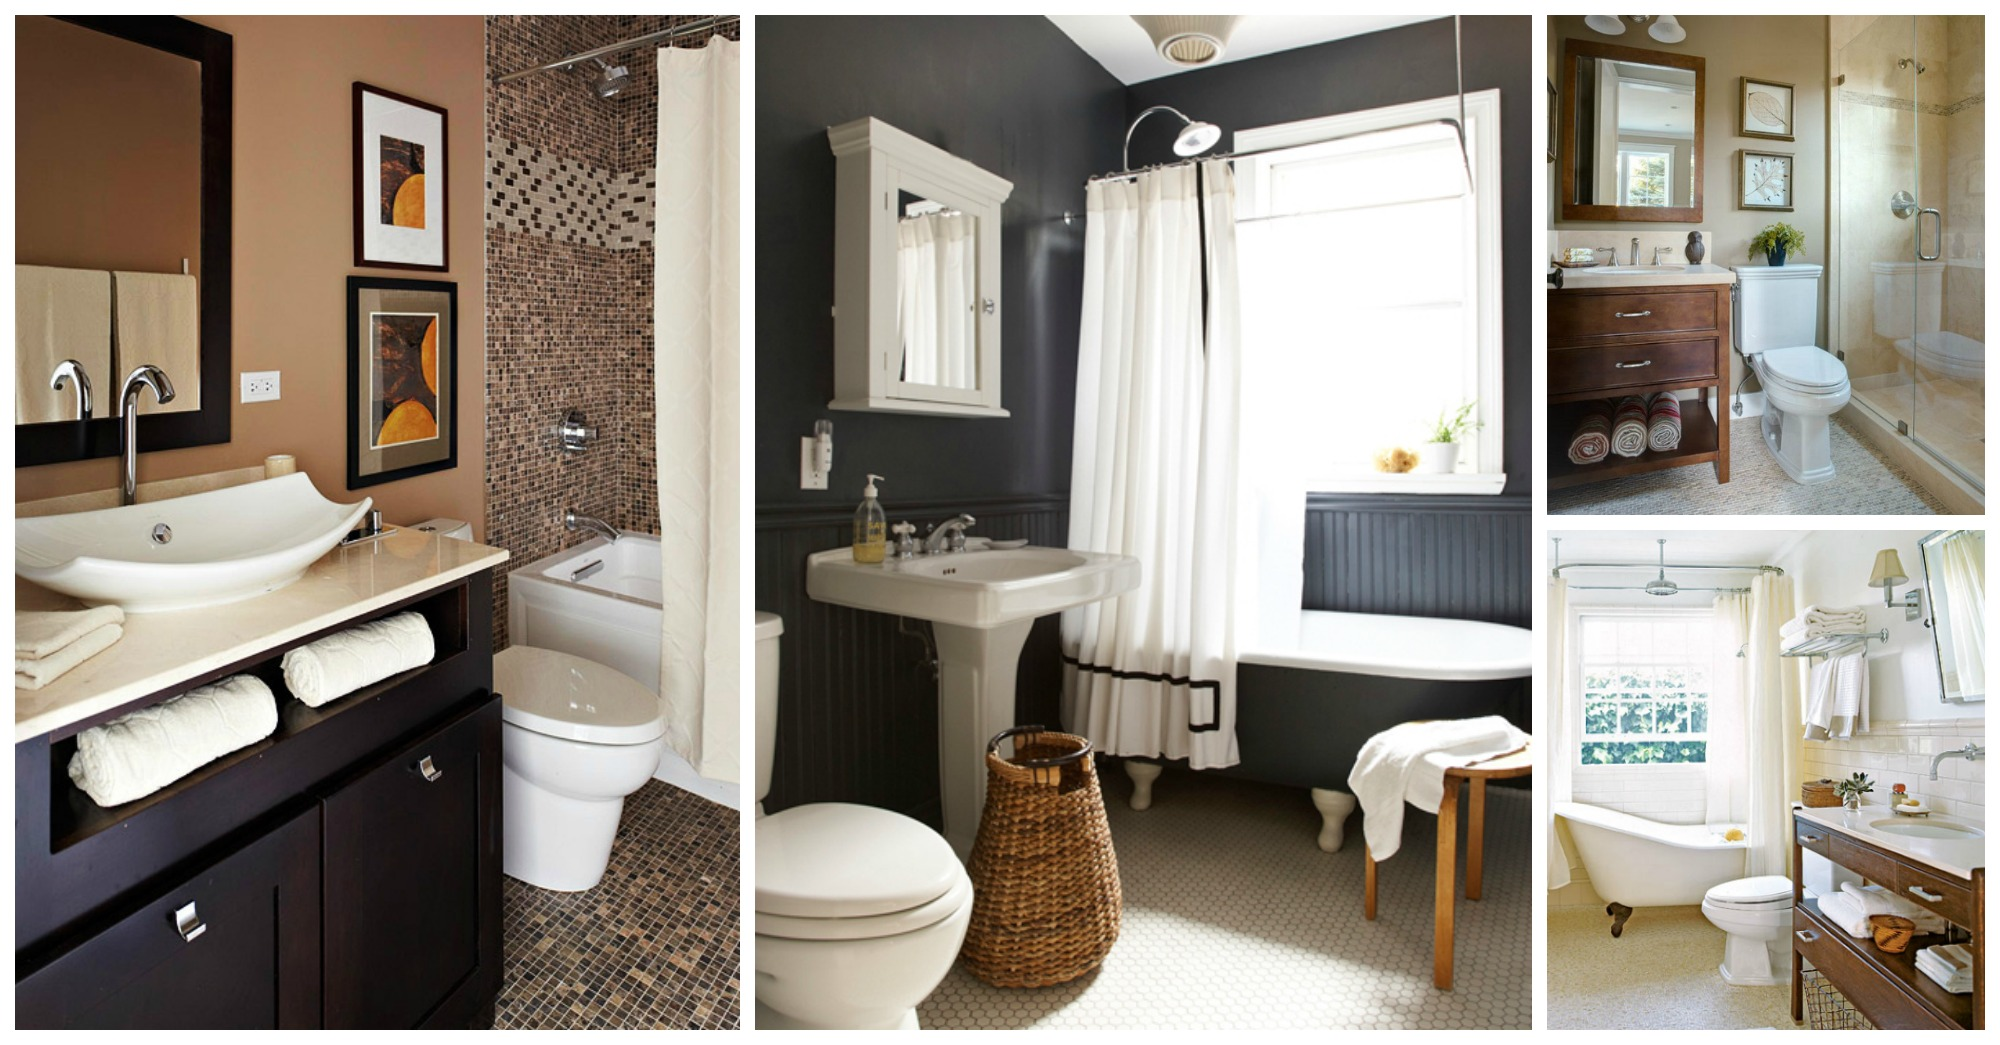 Smart Tips to Organize Your Small Bathroom